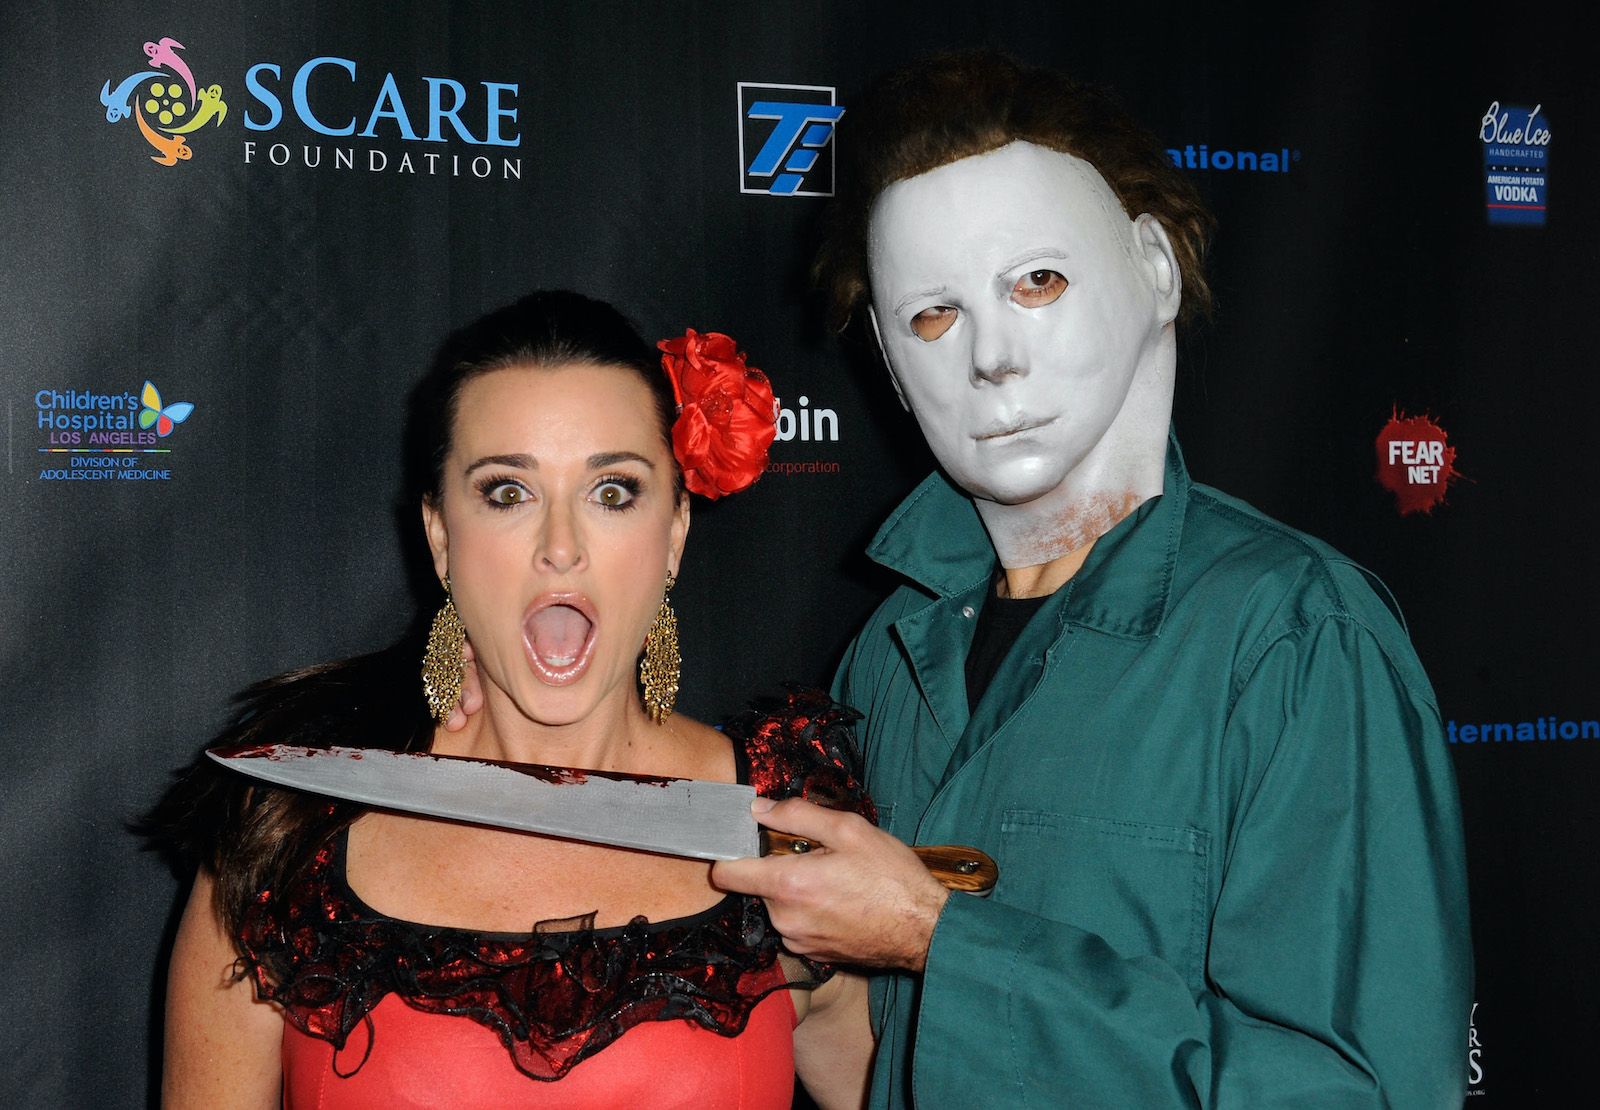 Kyle Richards from RHOBH shares her fears about filming Halloween Kills